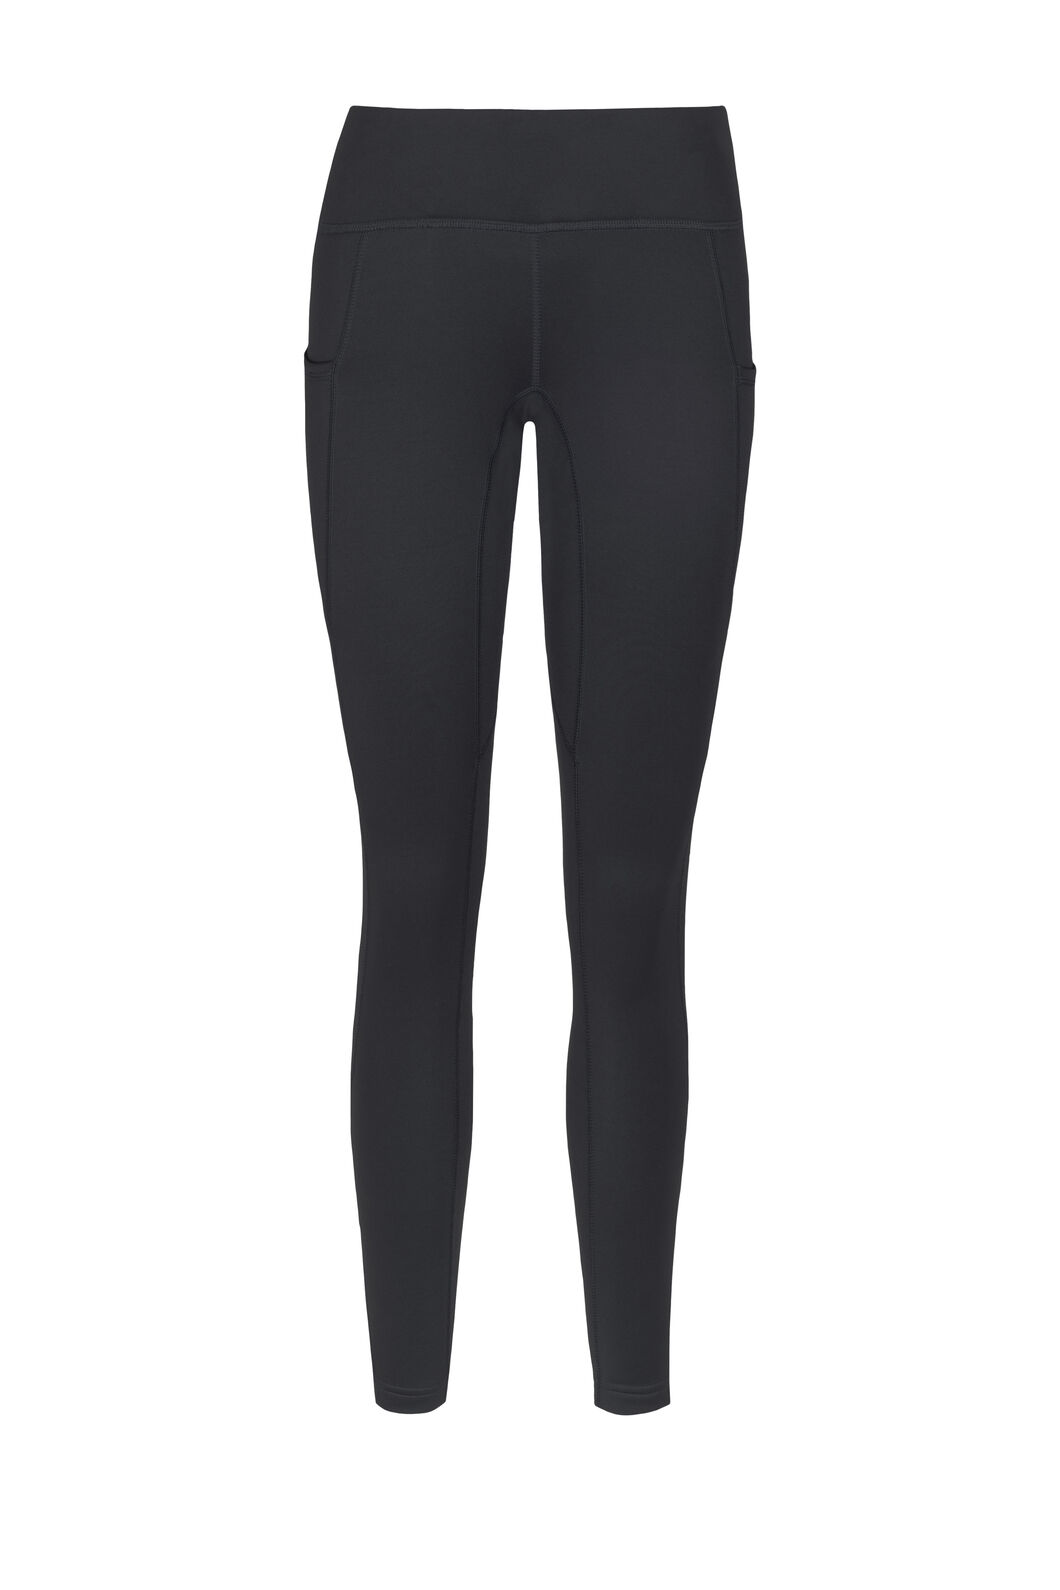 Macpac Traverse Tights — Women's, Black, hi-res